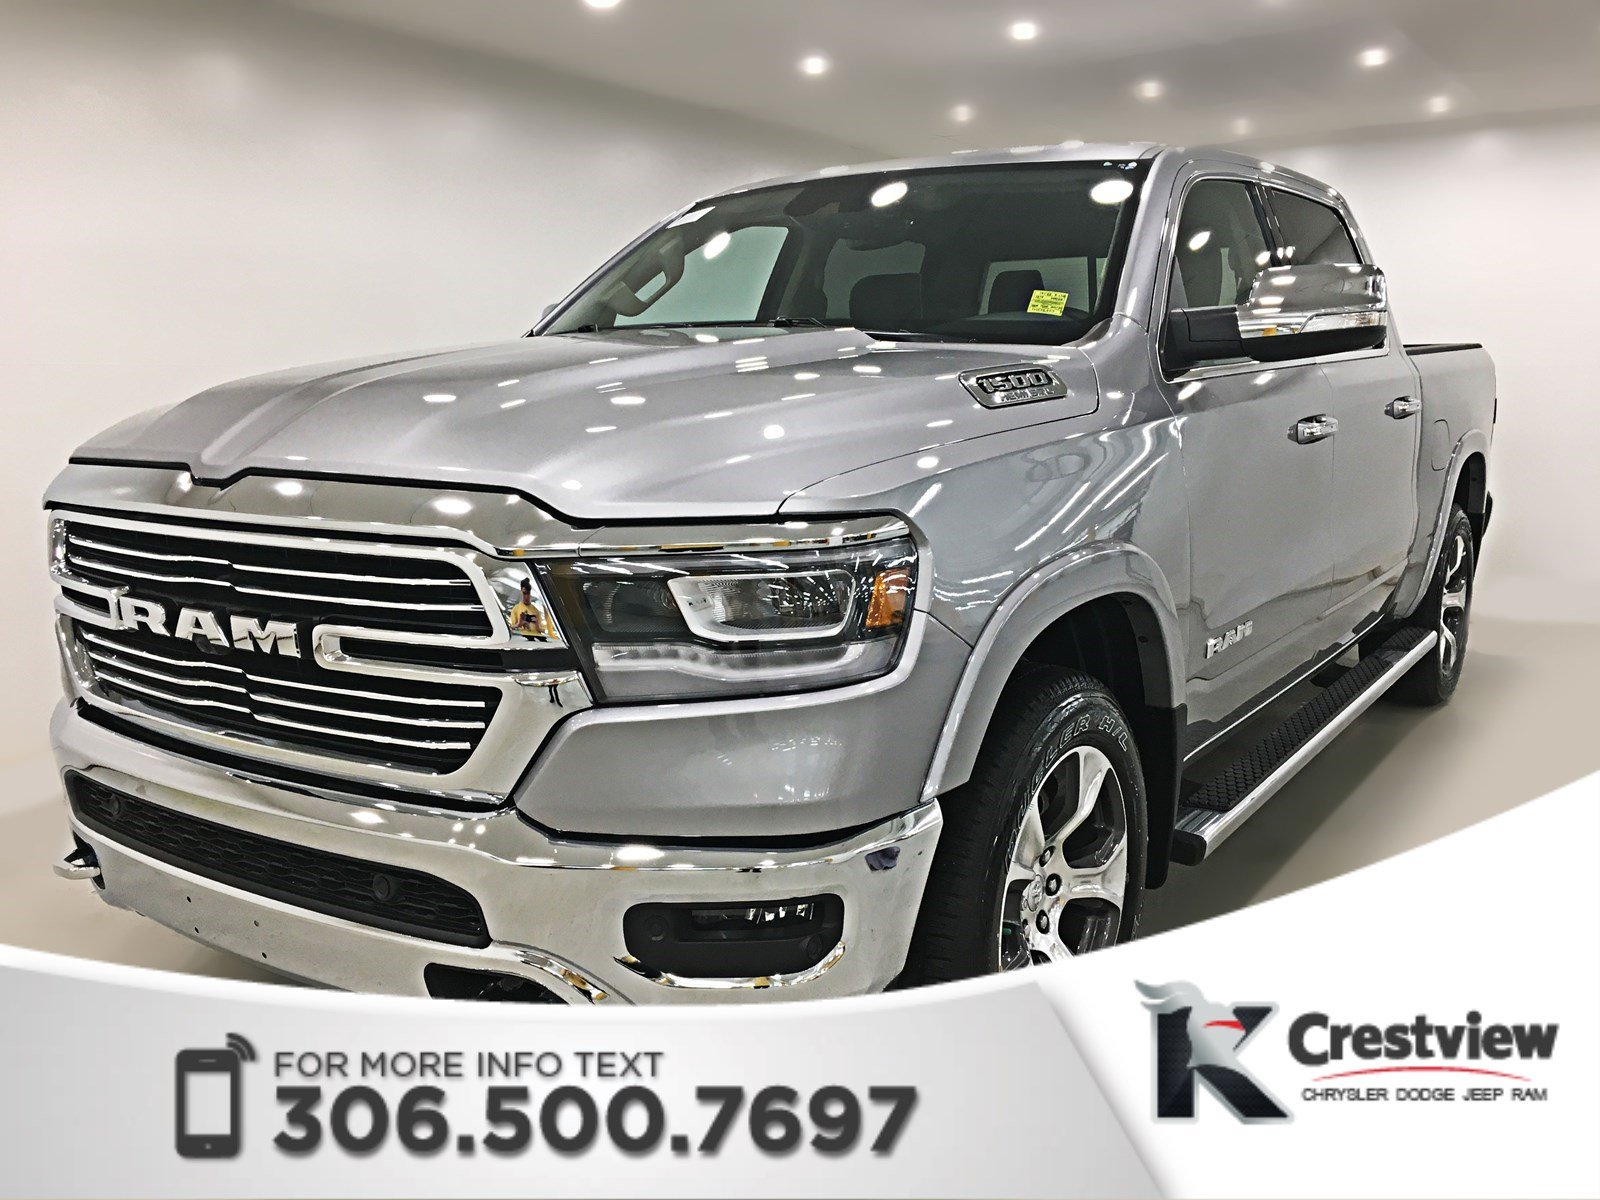 Cars for Sale Near Me with Sunroof Awesome New 2019 Ram 1500 Laramie Crew Cab Panoramic Sunroof